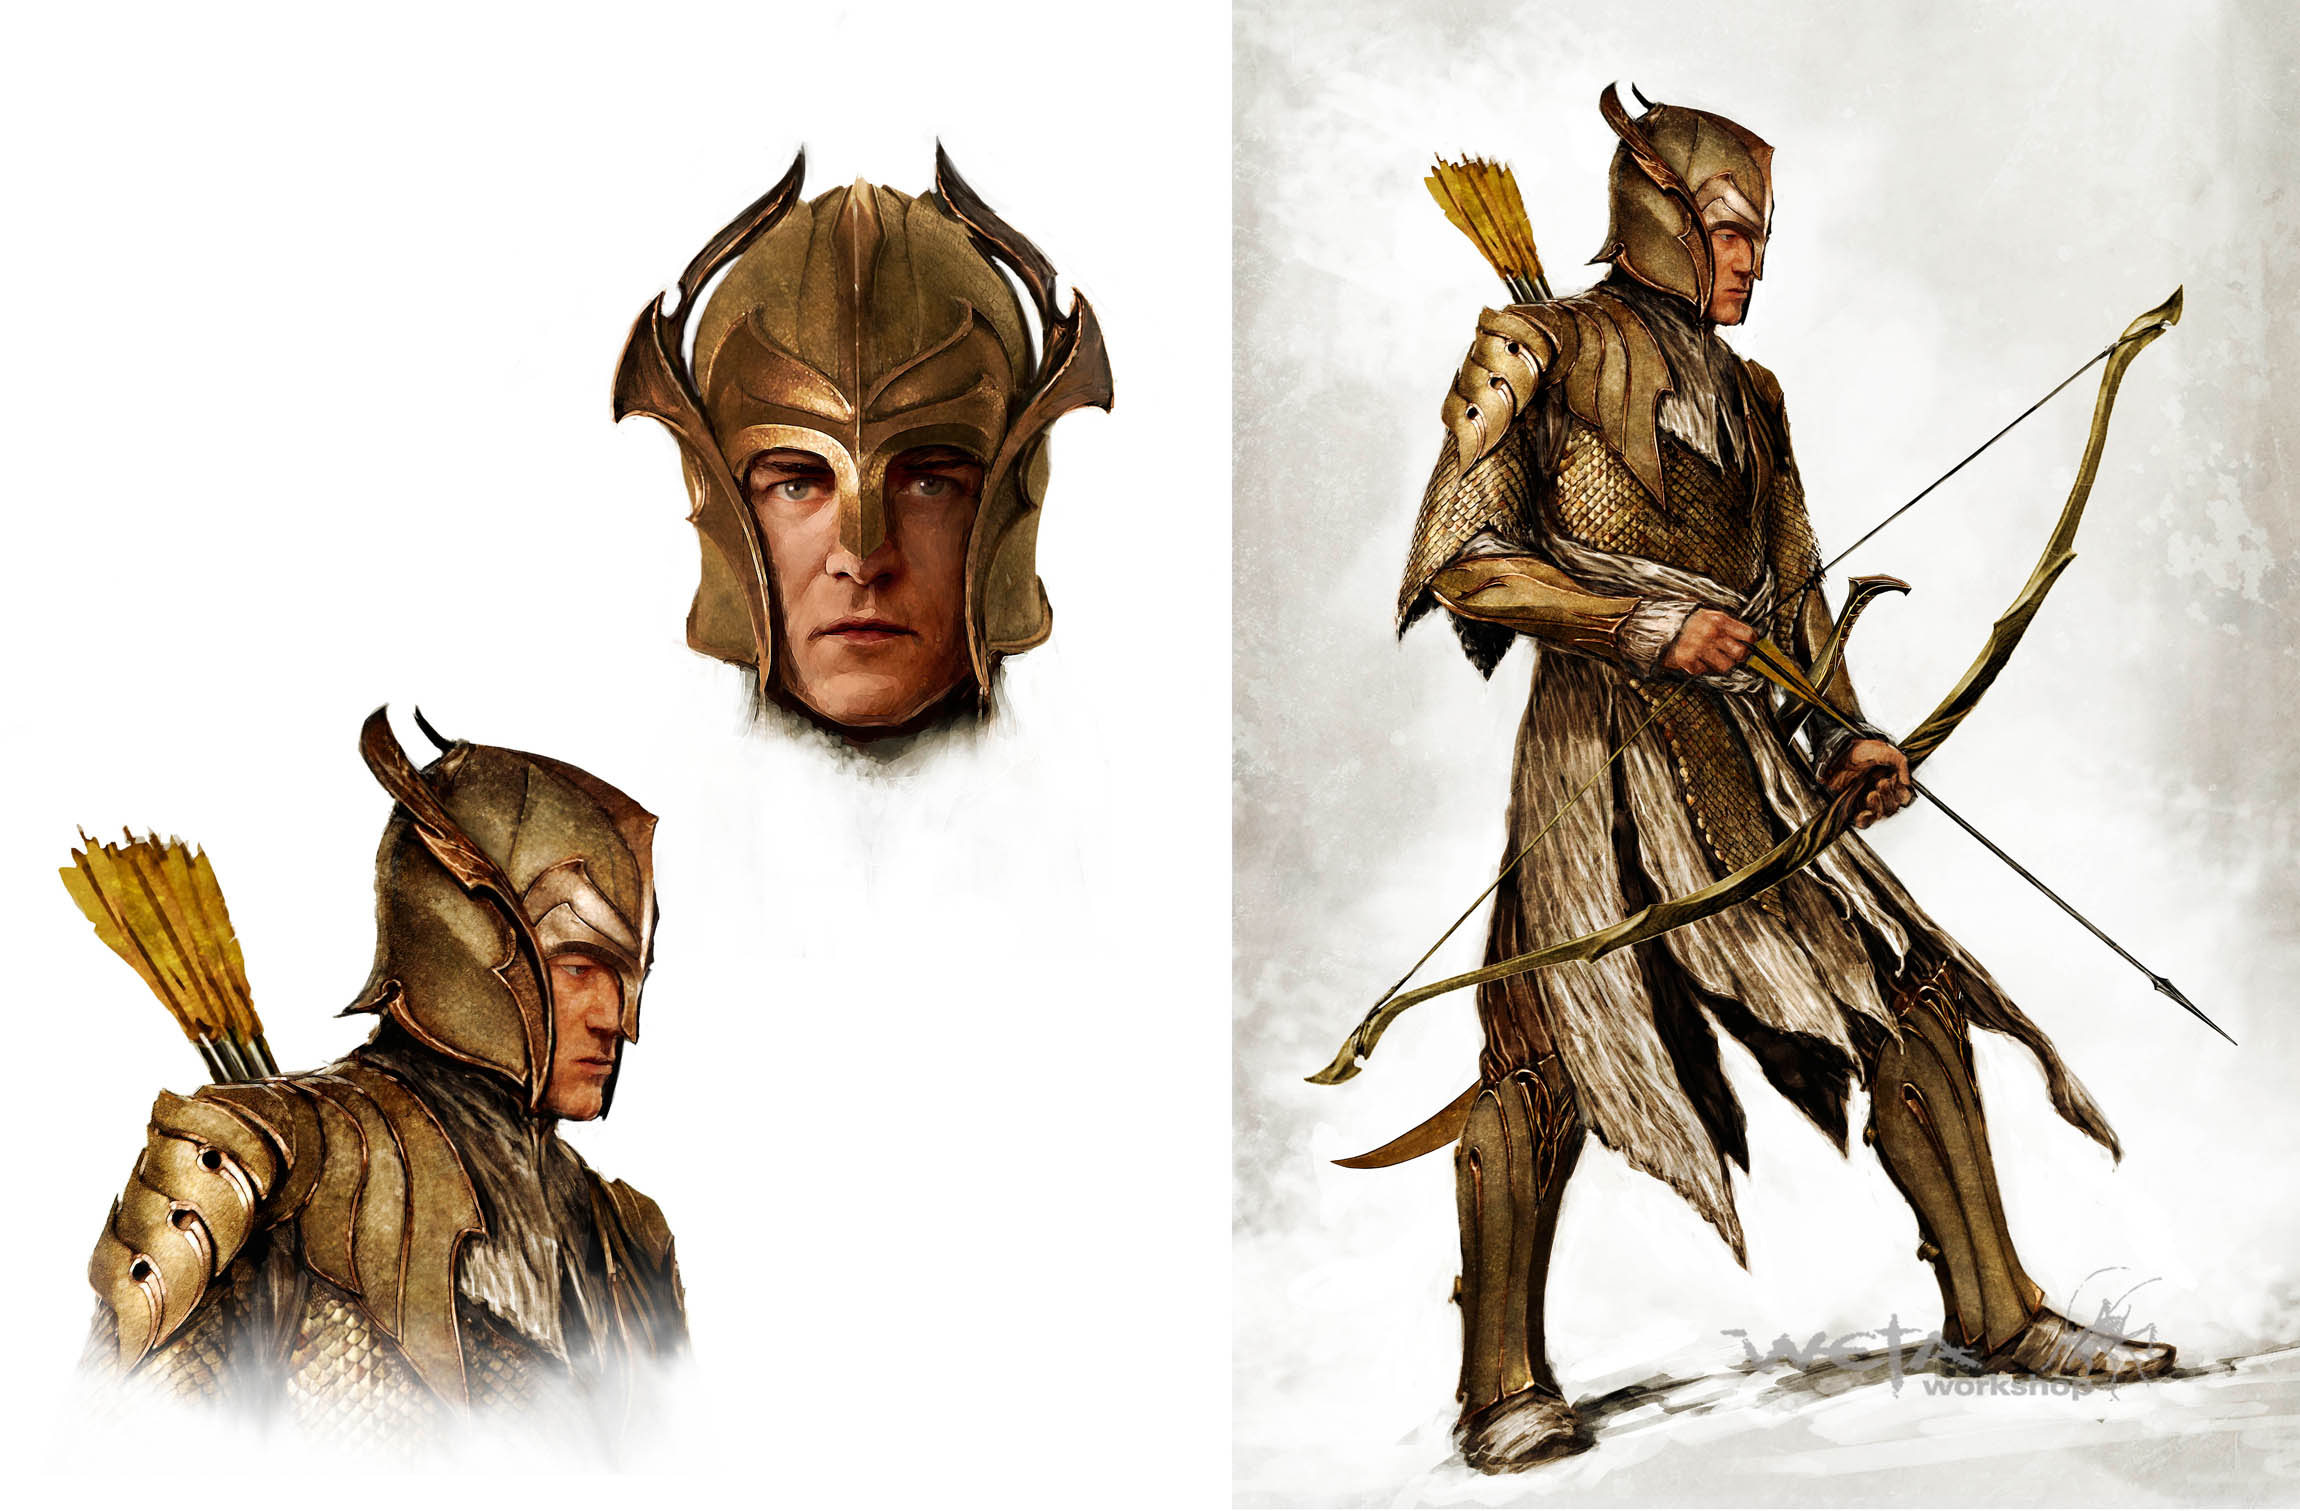 Mirkwood Archer Concept image - LordDainOfIronHills - Indie DB